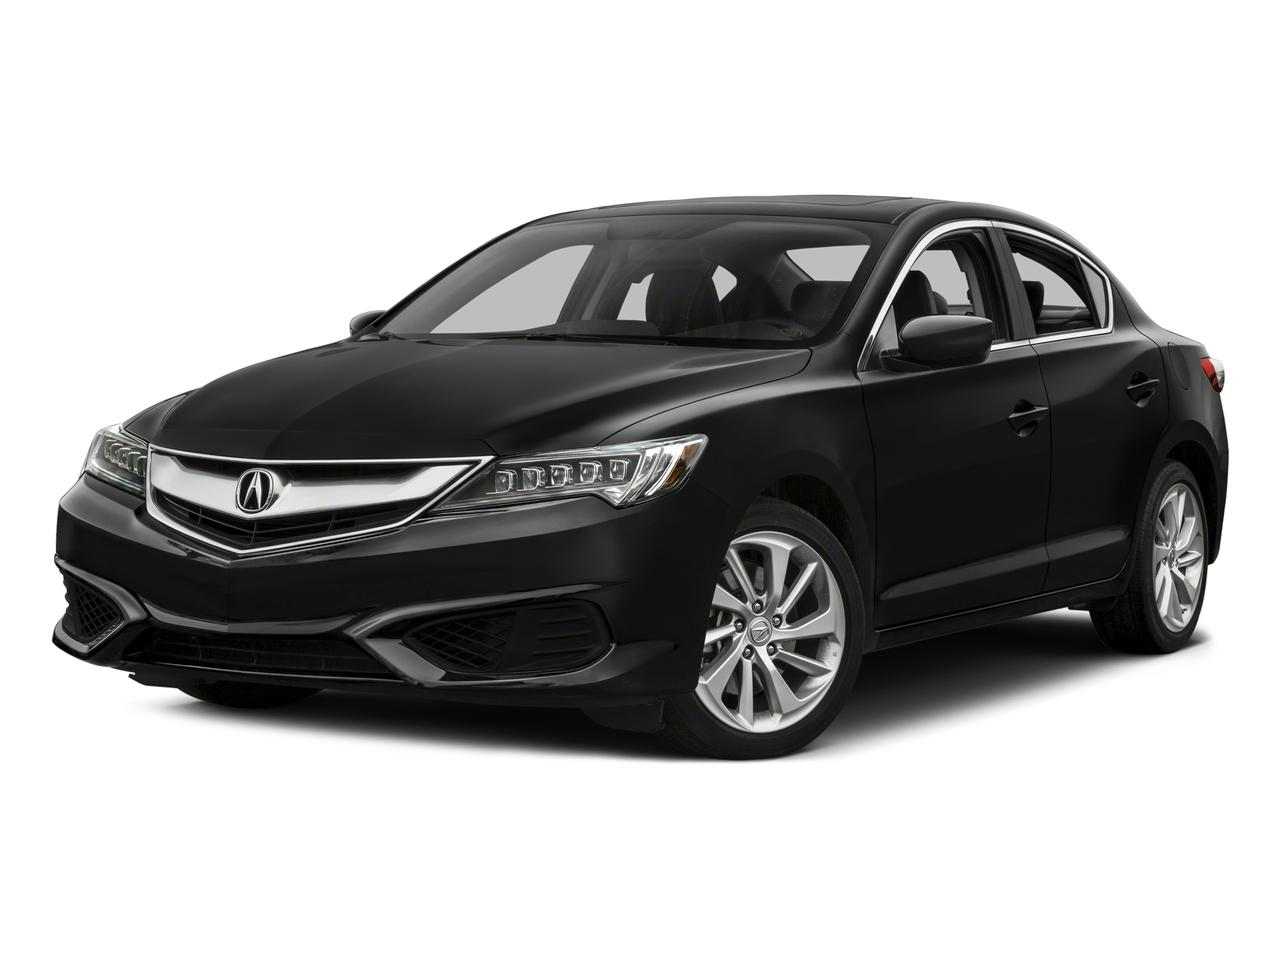 2016 Acura ILX Vehicle Photo in Akron, OH 44320